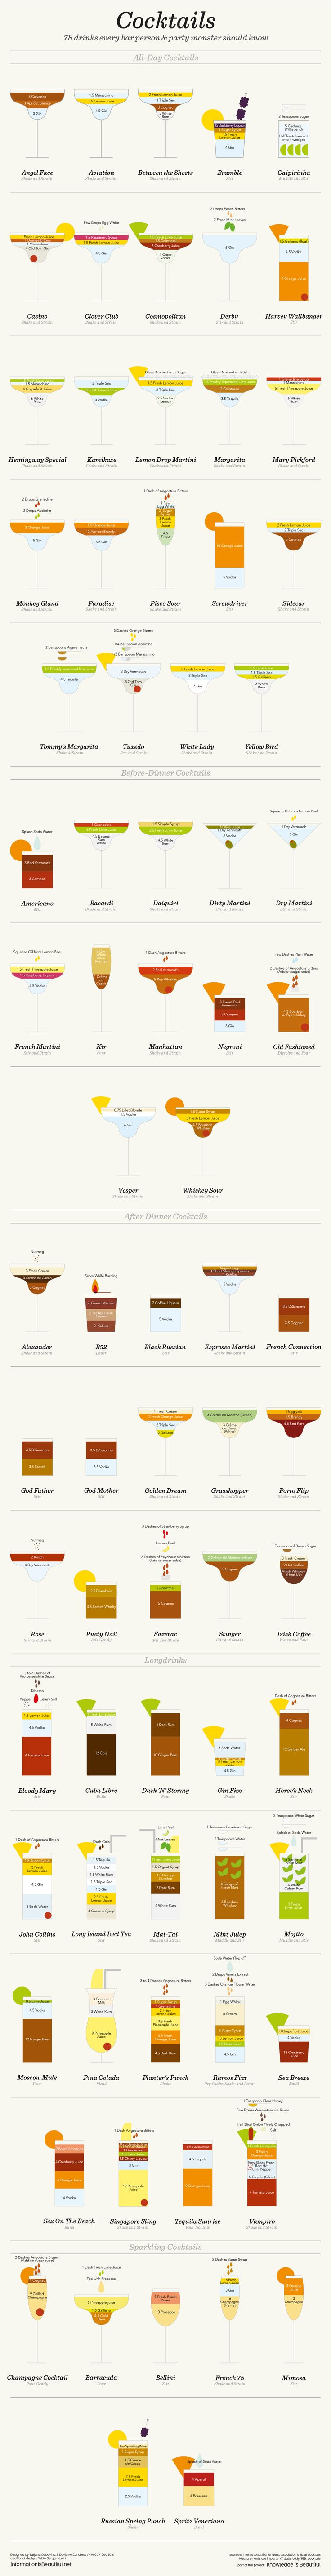 78 Cocktail Recipes Every Party Monster Should Know: We sure do love our cocktails, which is why we absolutely love this infographic from Information is Beautiful.